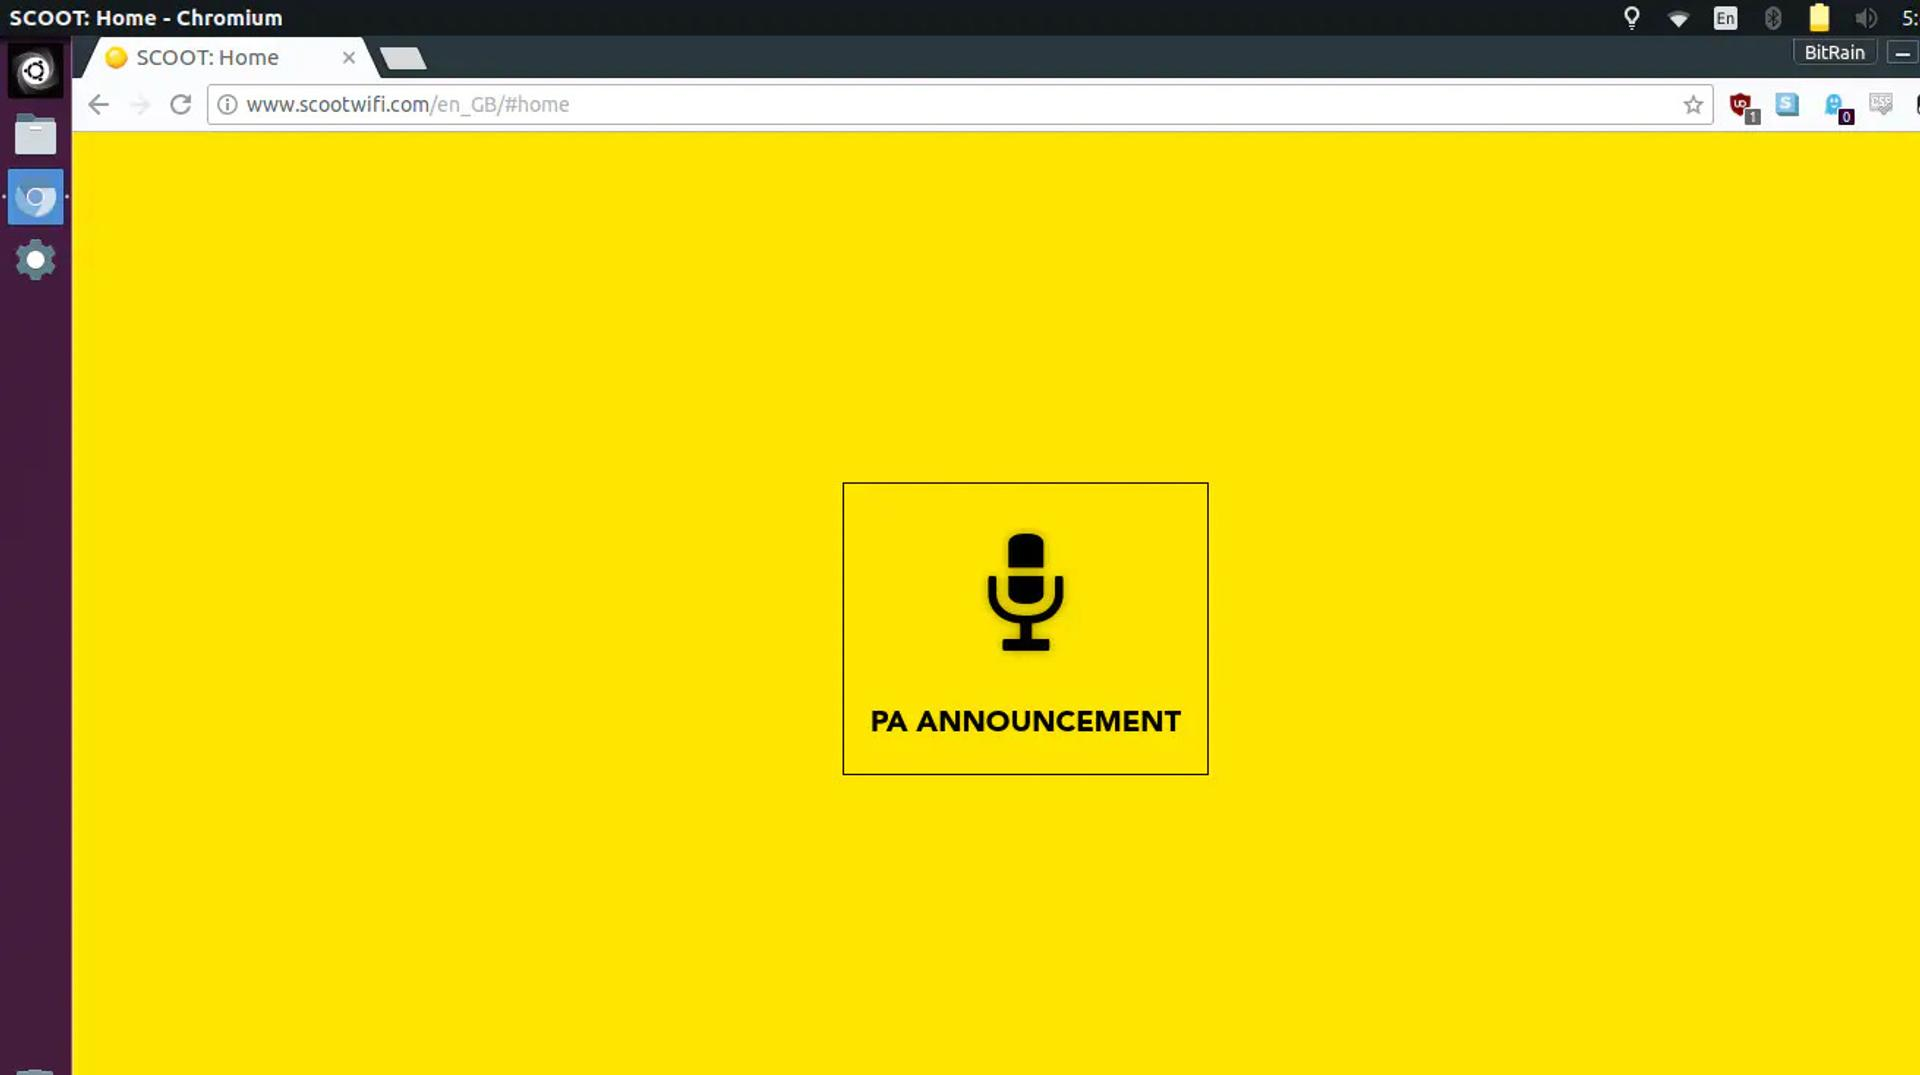 PA Announcement screen in browser